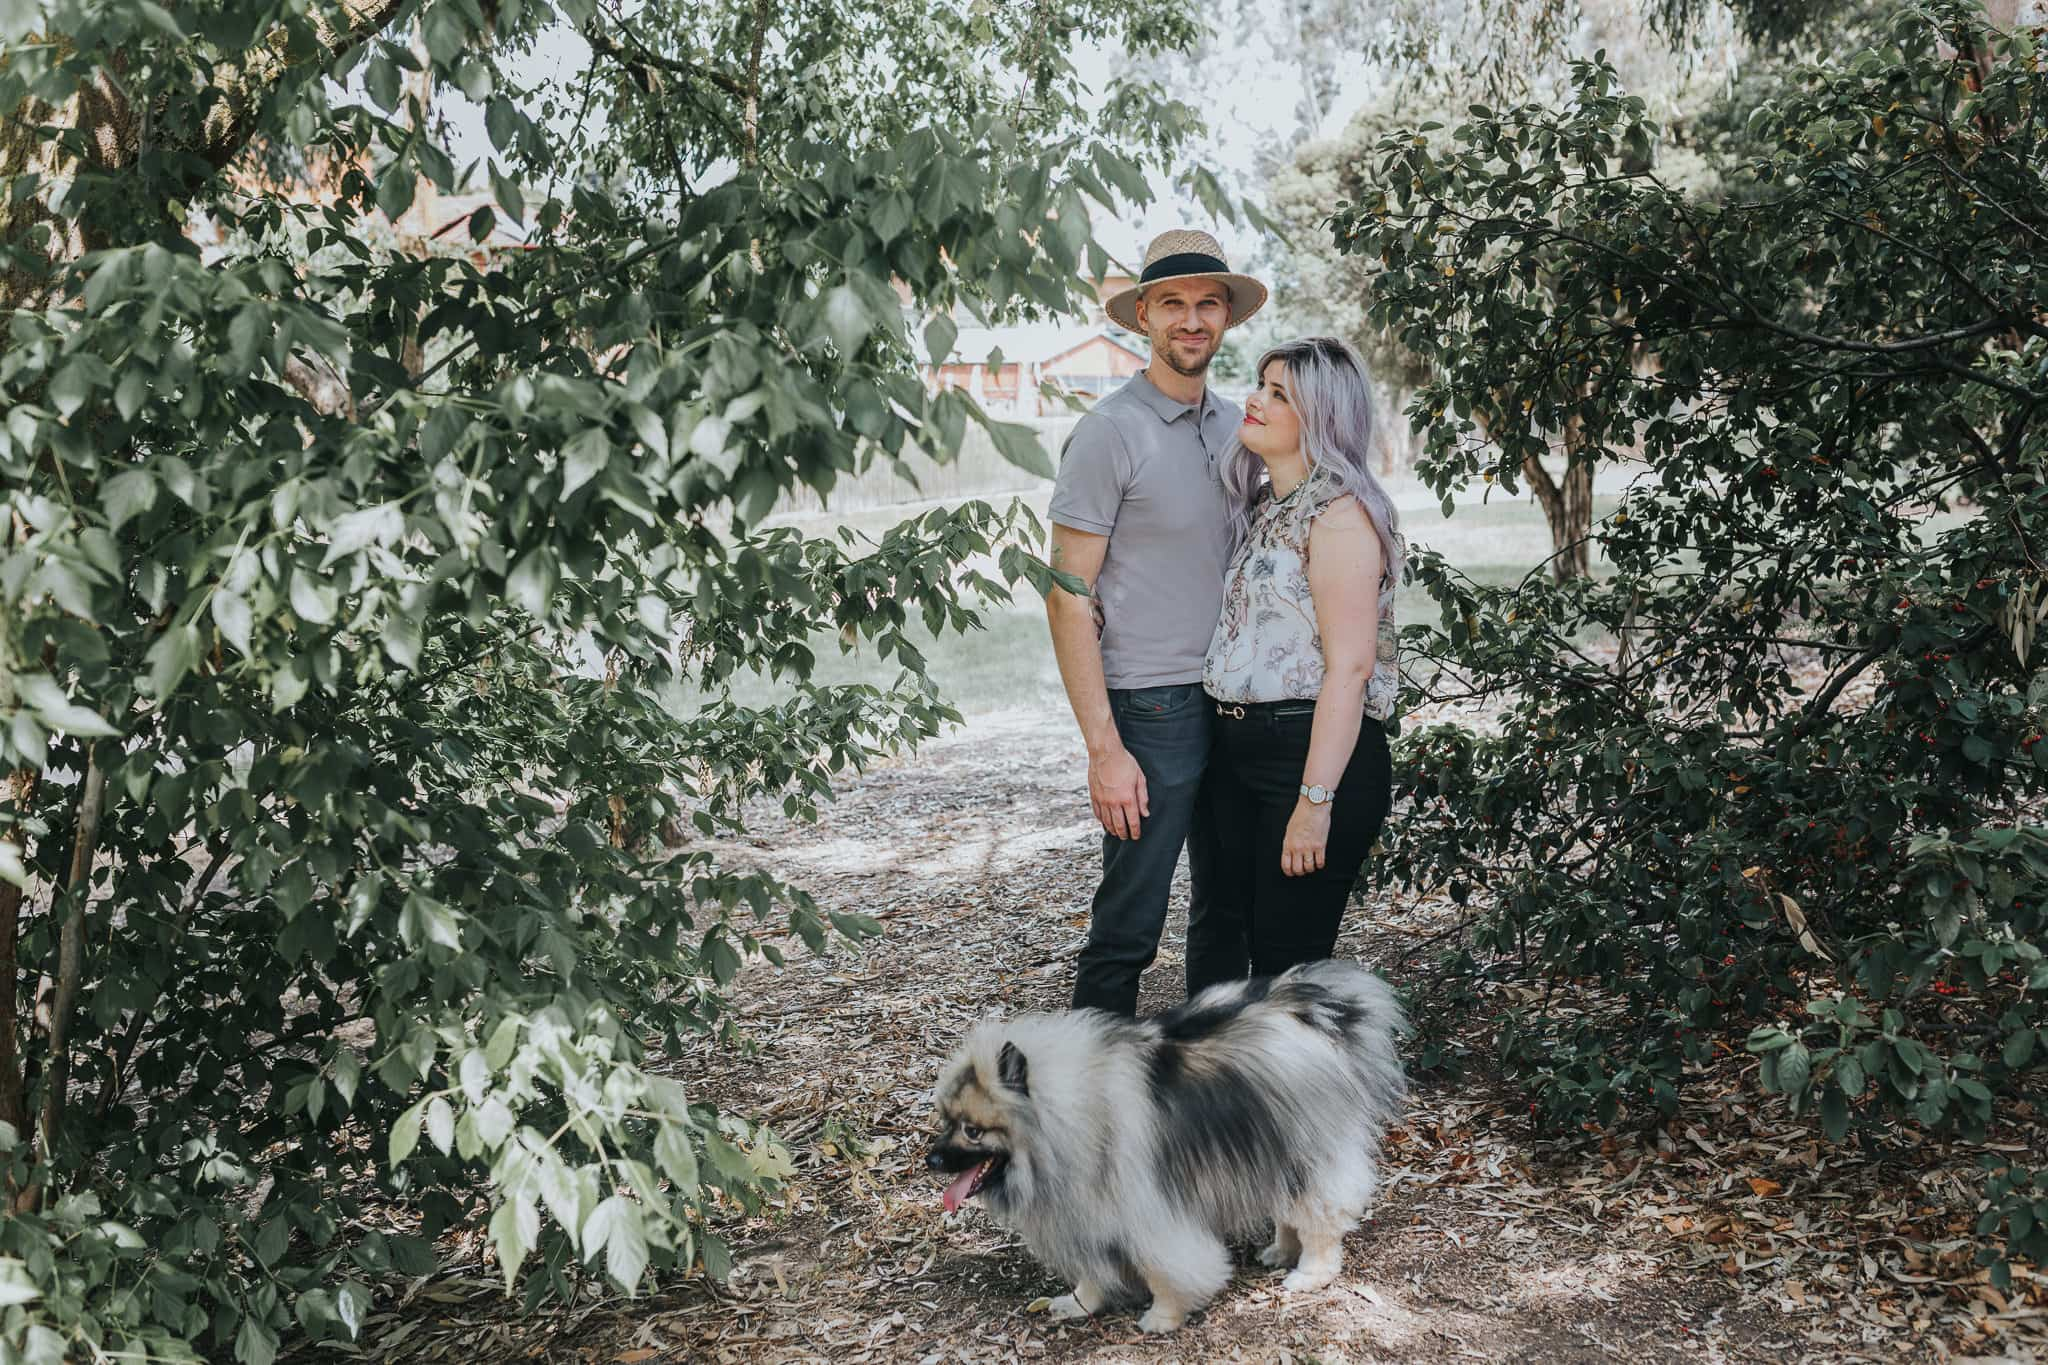 documenting couples - couples photographer in melbourne incorporates pets and furry friends in photoshoots